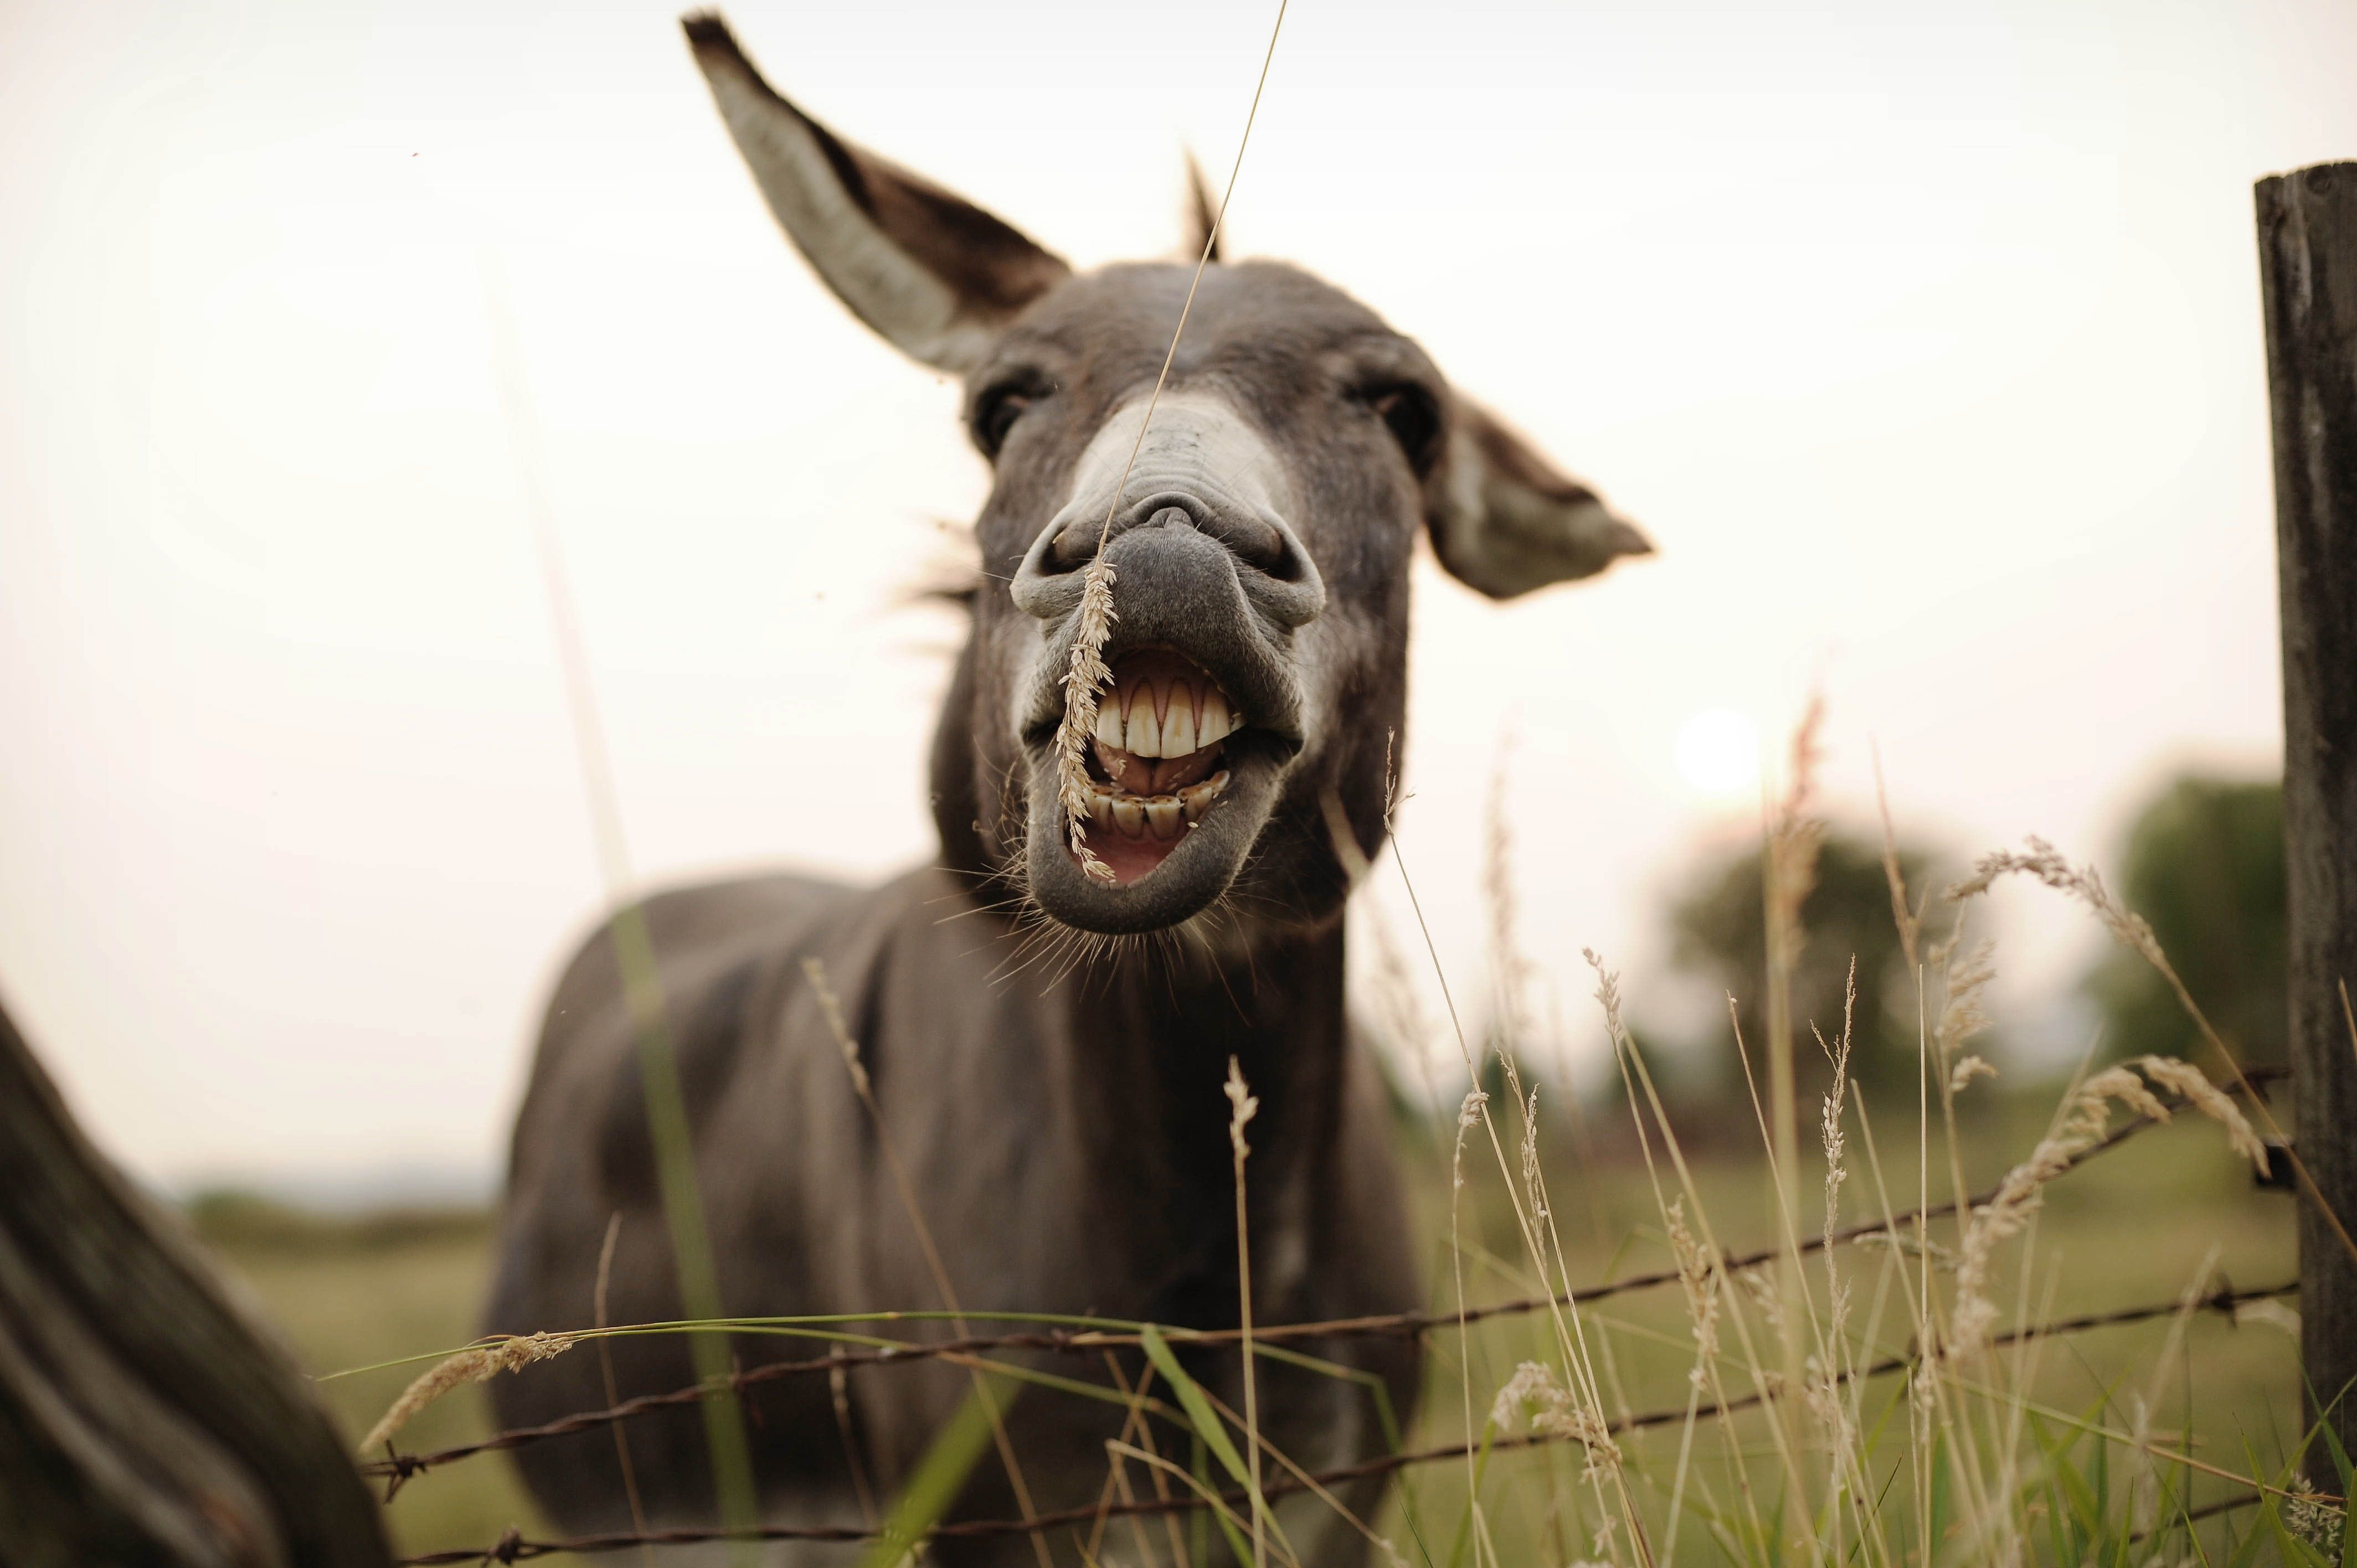 Gideon Swartzentruber was reportedly caught having sex with a donkey (not pictured)